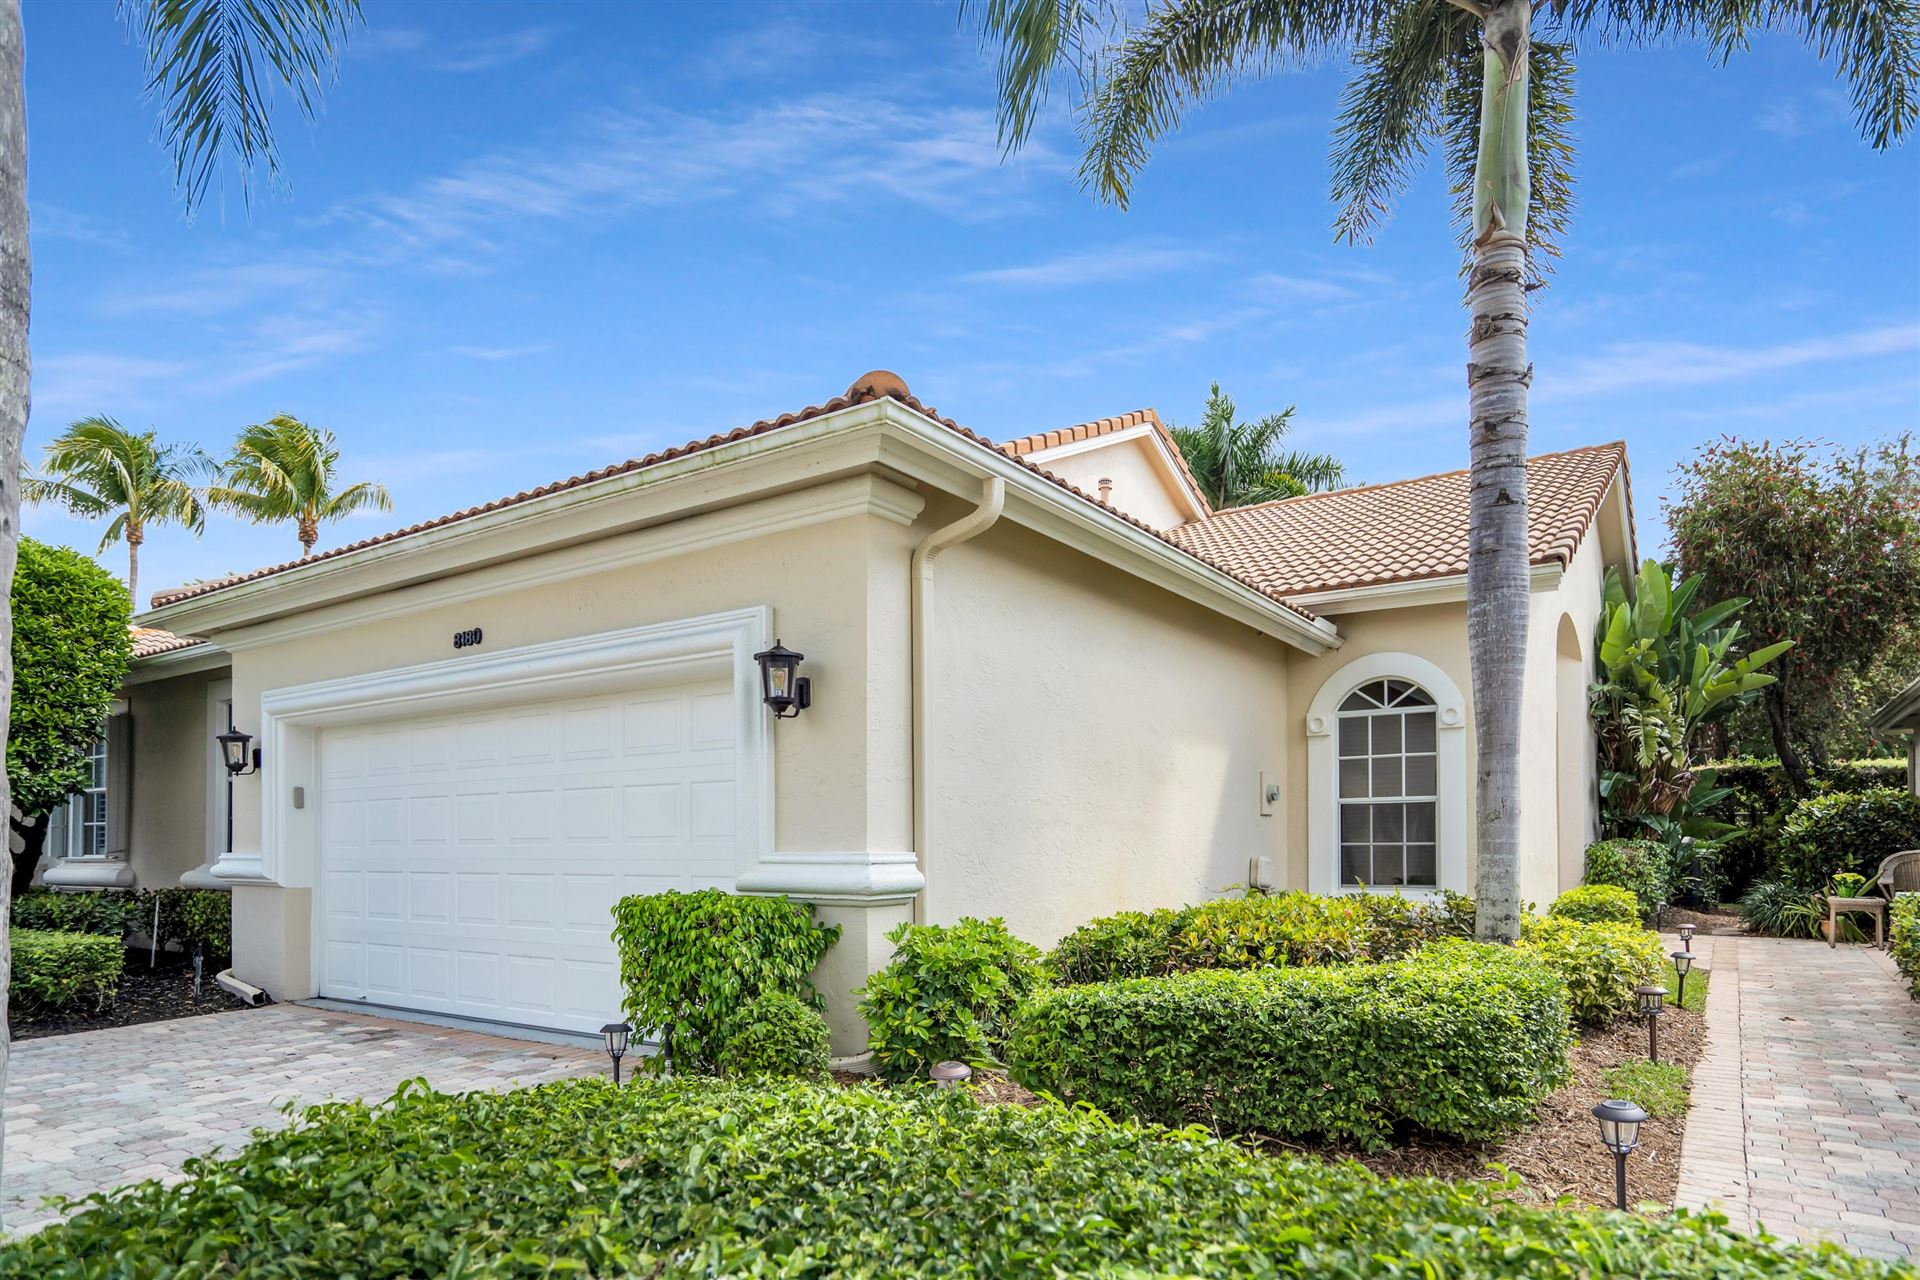 Photo of 8180 Sandpiper Way, West Palm Beach, FL 33412 (MLS # RX-10703869)